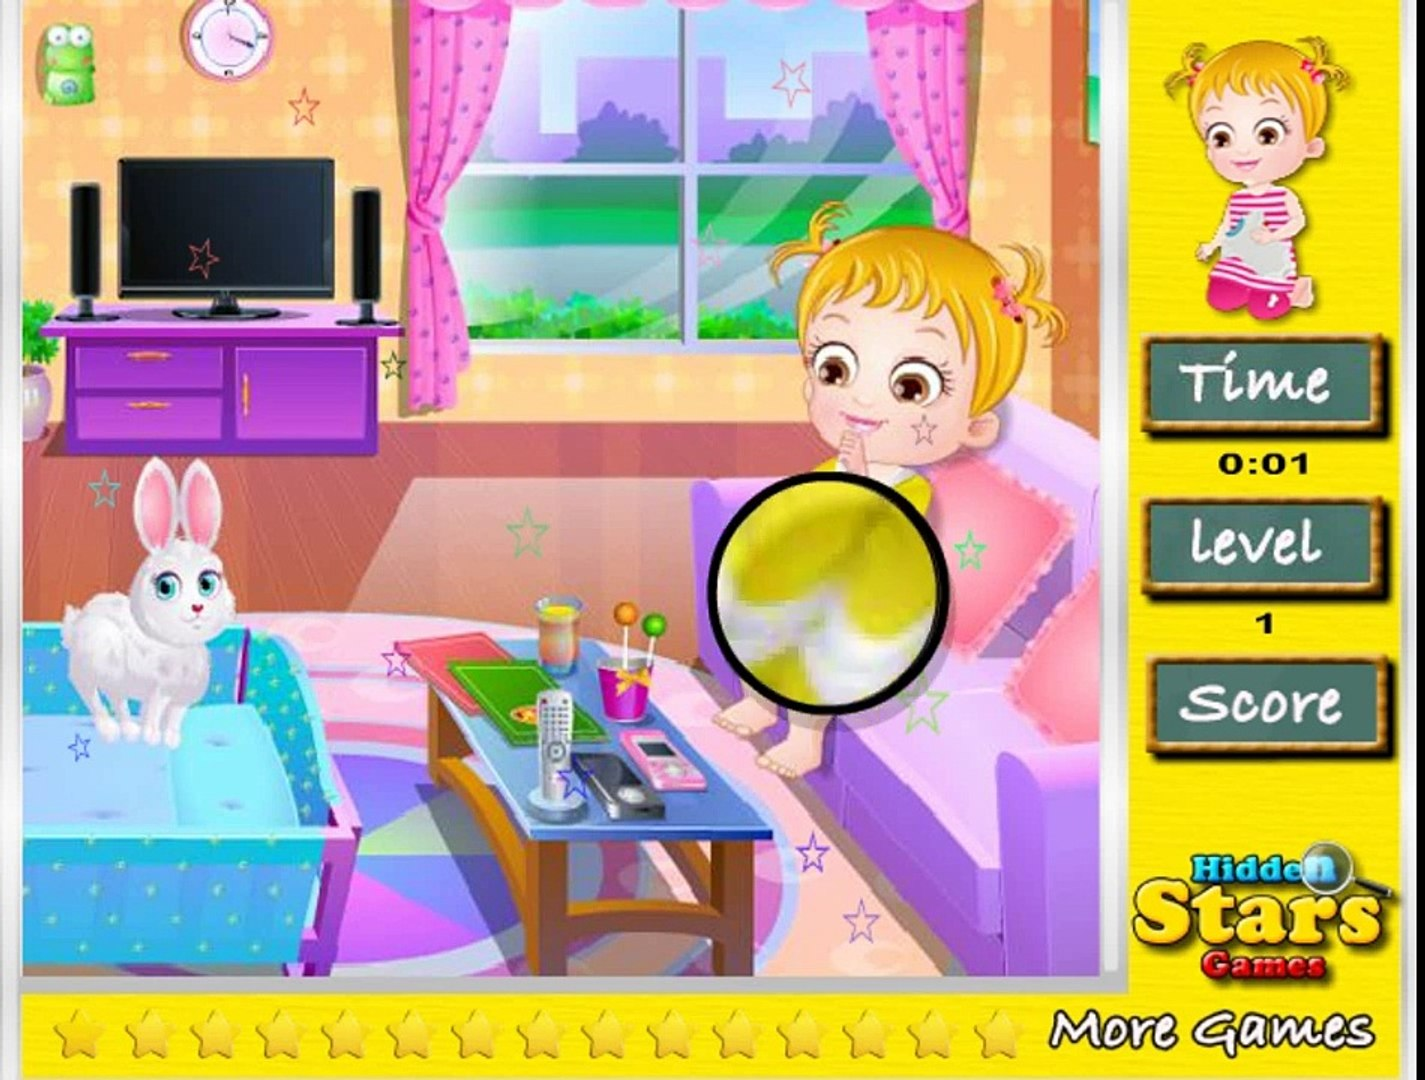 baby hazel hidden star game play fo kids , super game for kids , nice game for childrens